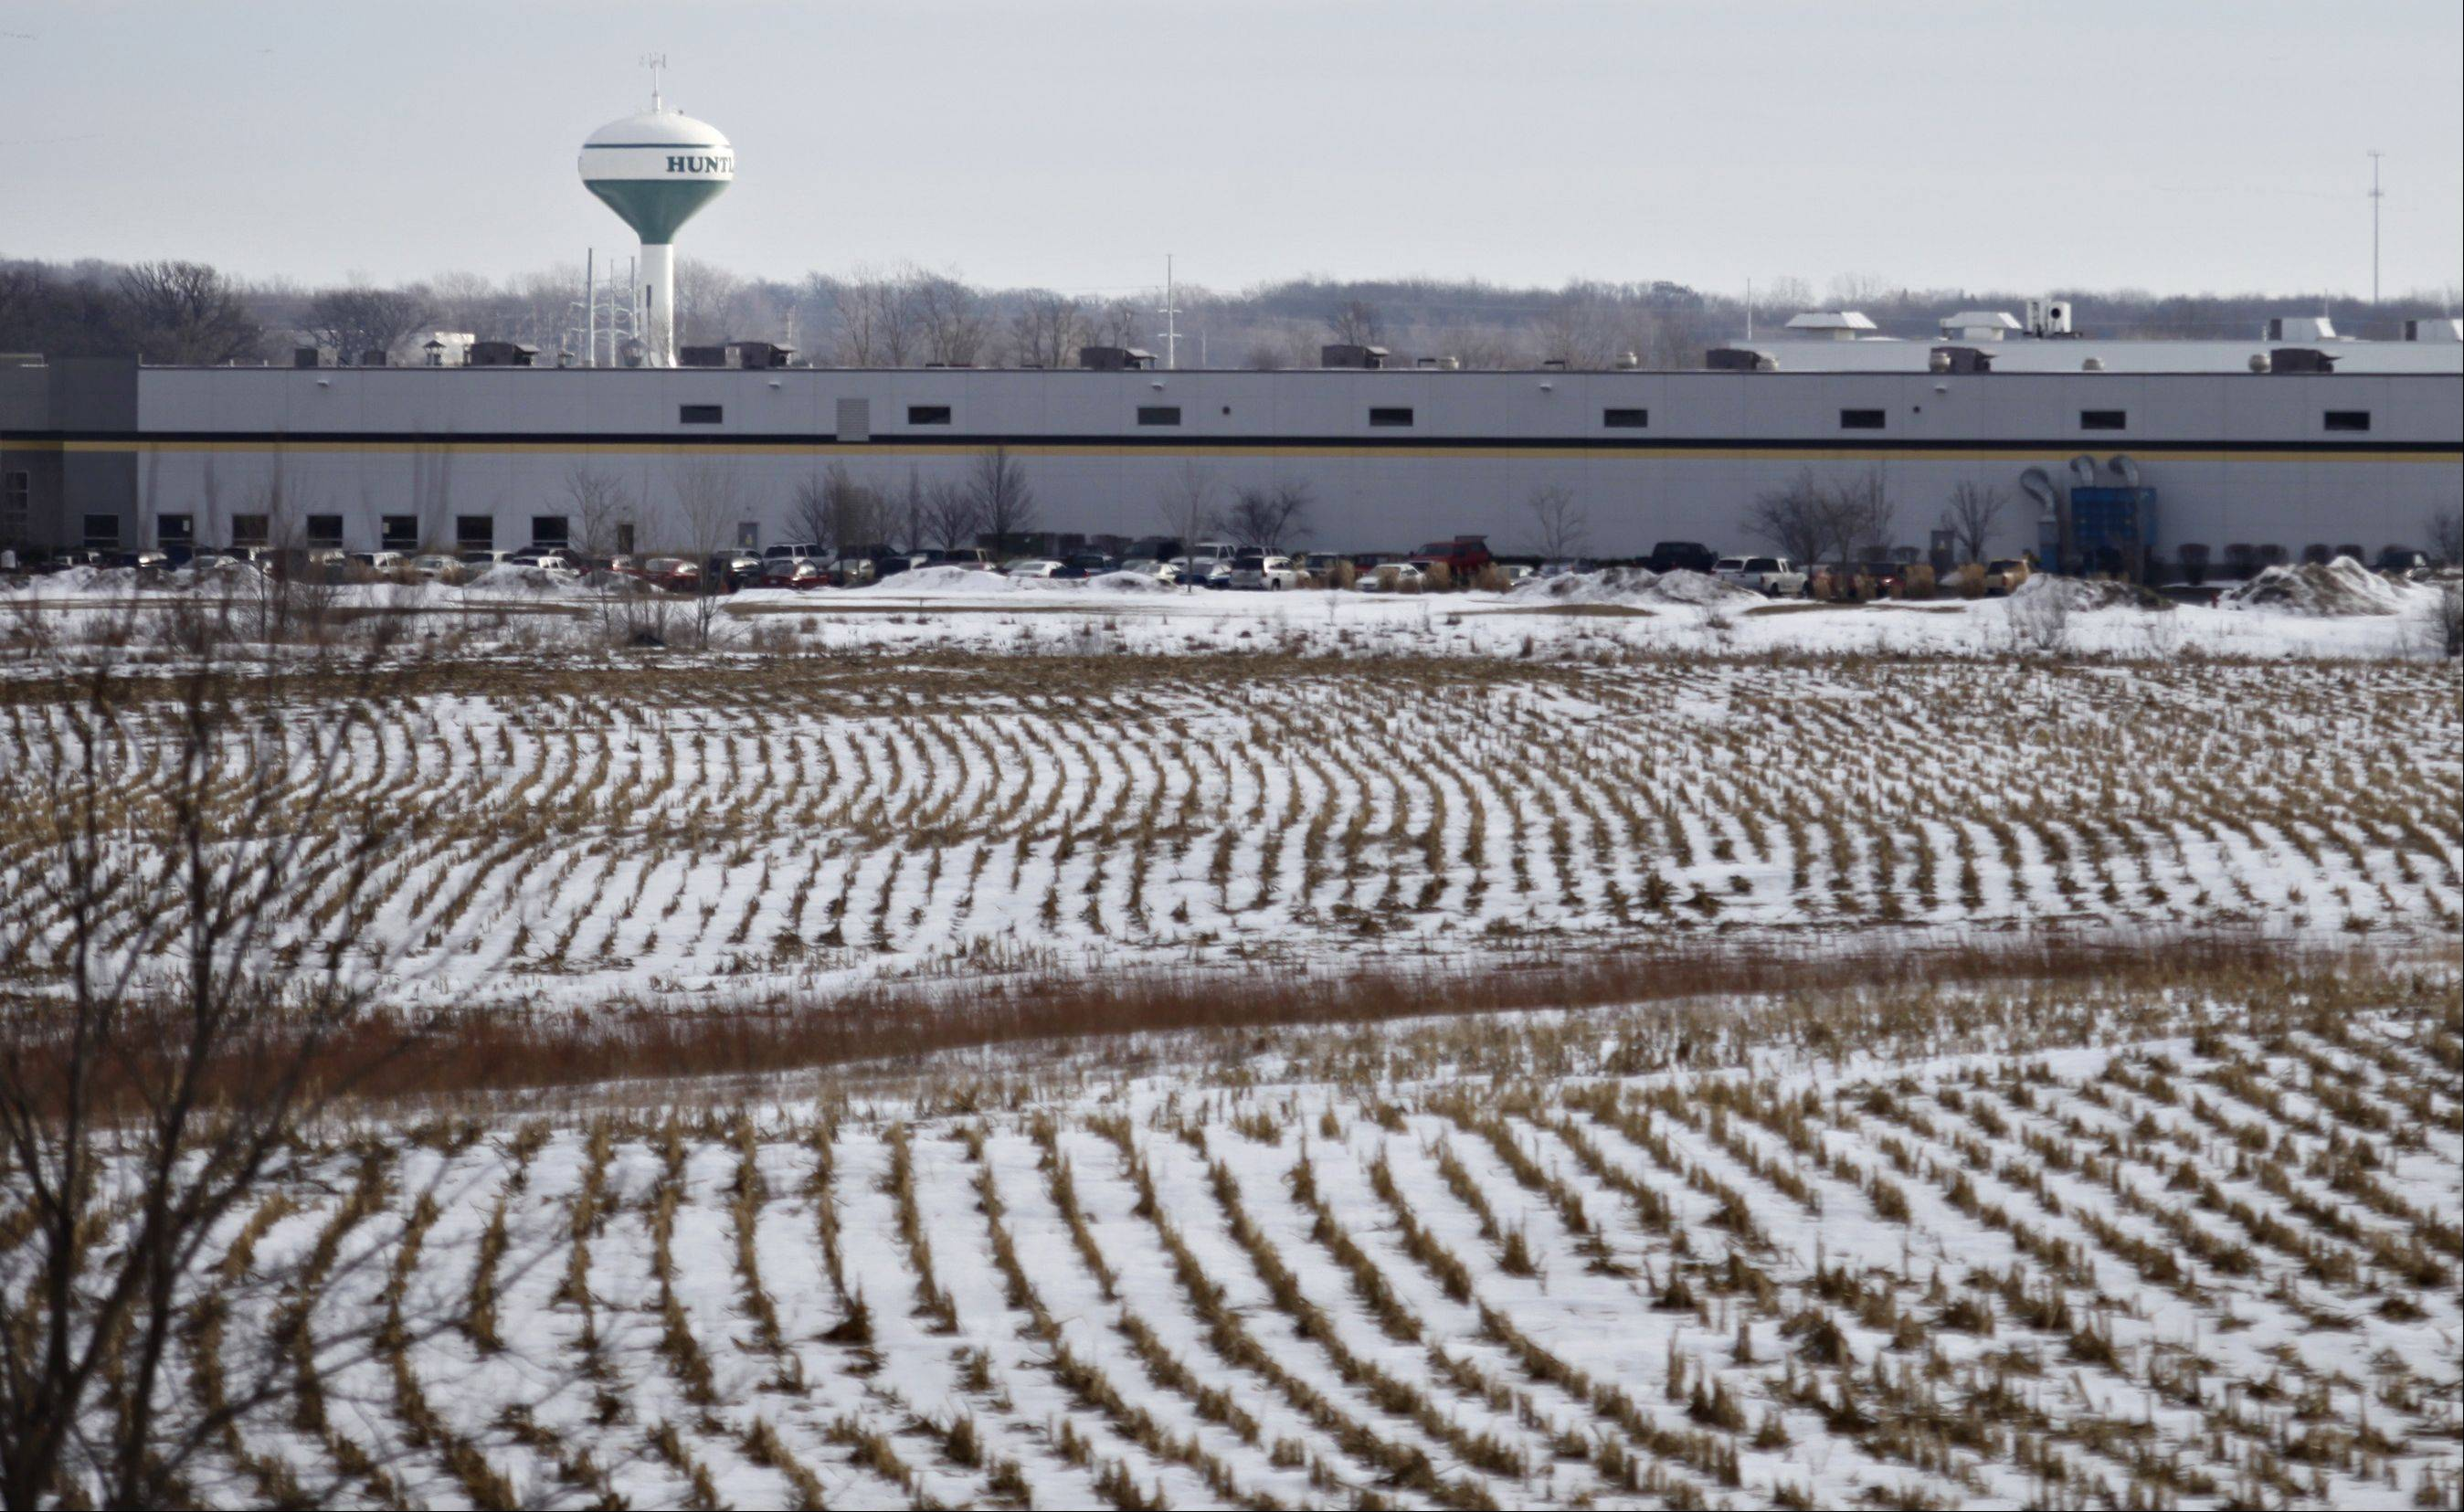 Farmland to the west of Route 47 is listed for sale as part of Huntley's corporate industrial park. Huntley is positioning itself as the next major industrial hub in the suburban Chicago market.